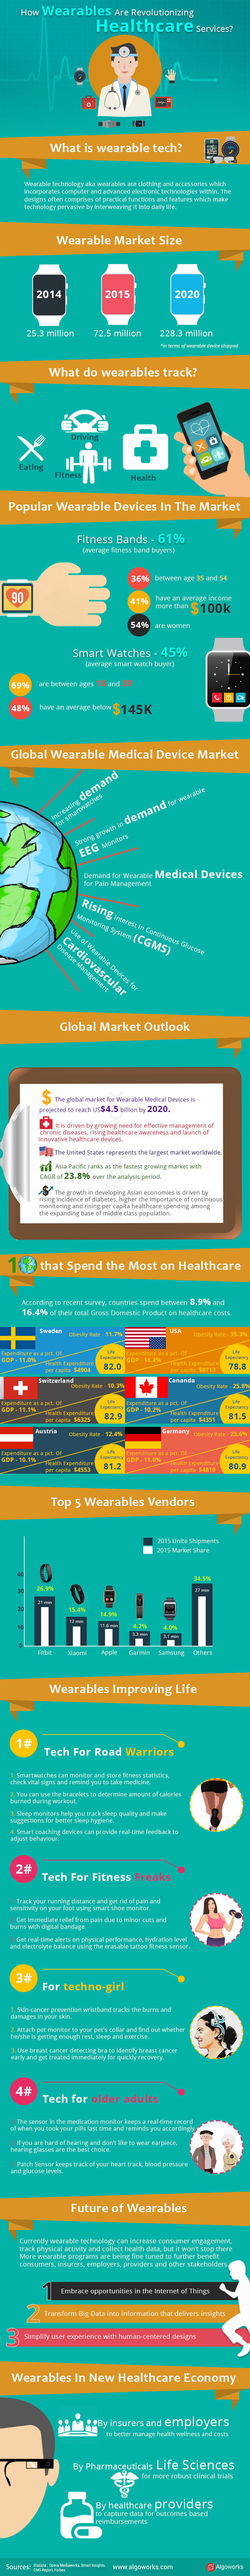 How Wearables Are Revolutionizing Healthcare Services?   An Infographic